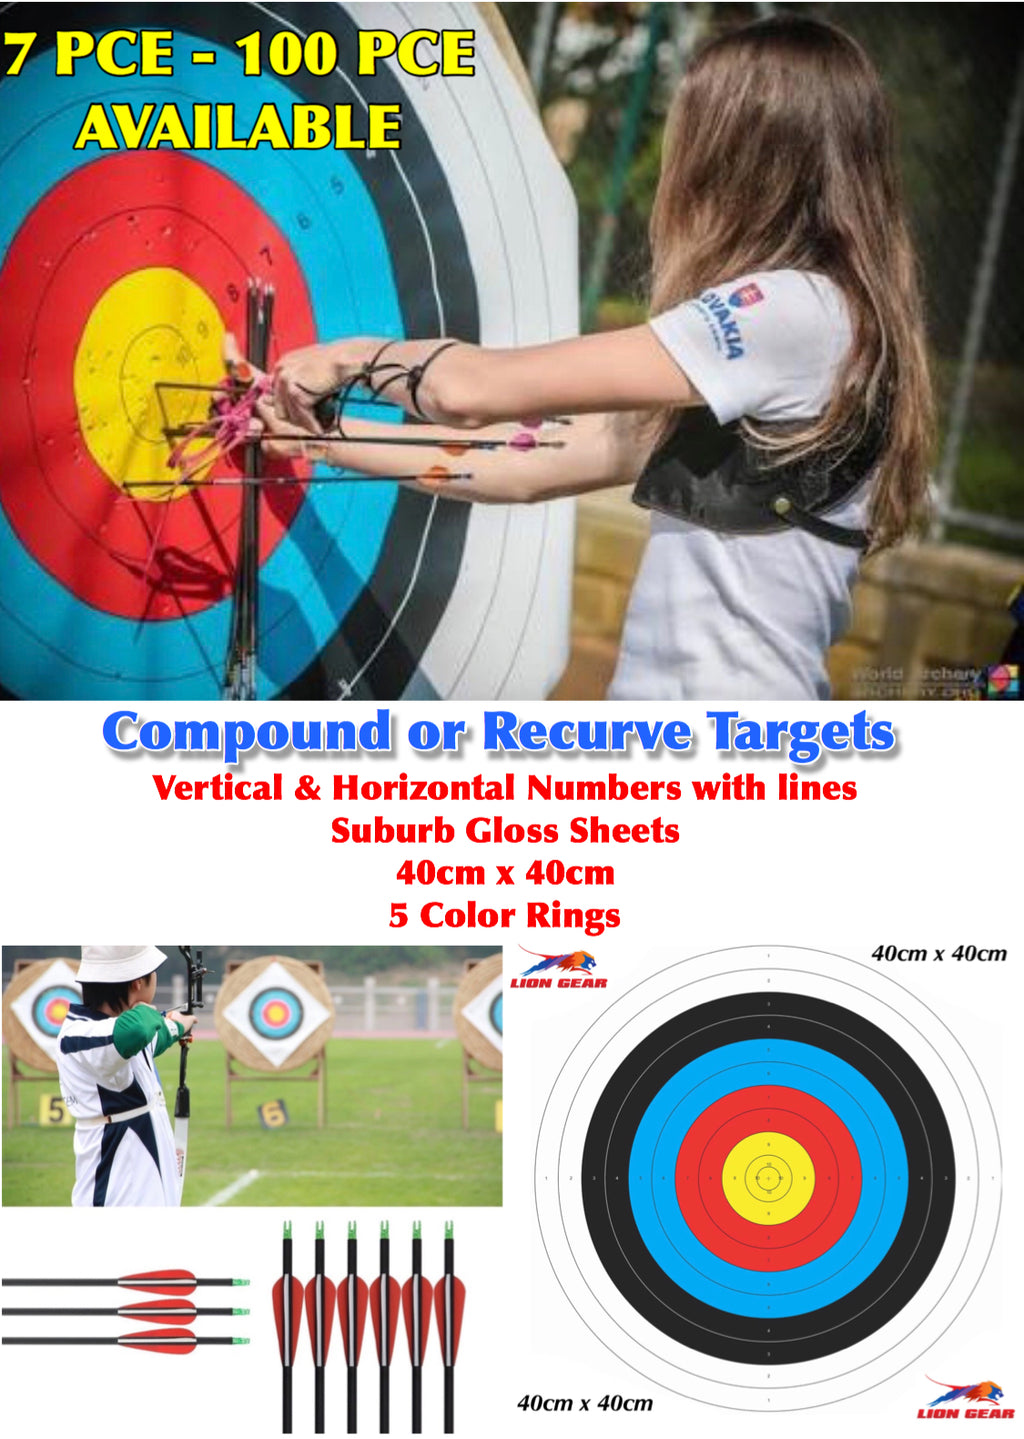 7 Pce - 100 Pce ARCHERY TARGETS COMPOUND OR RECURVE 40x40cm - Outback Tactical